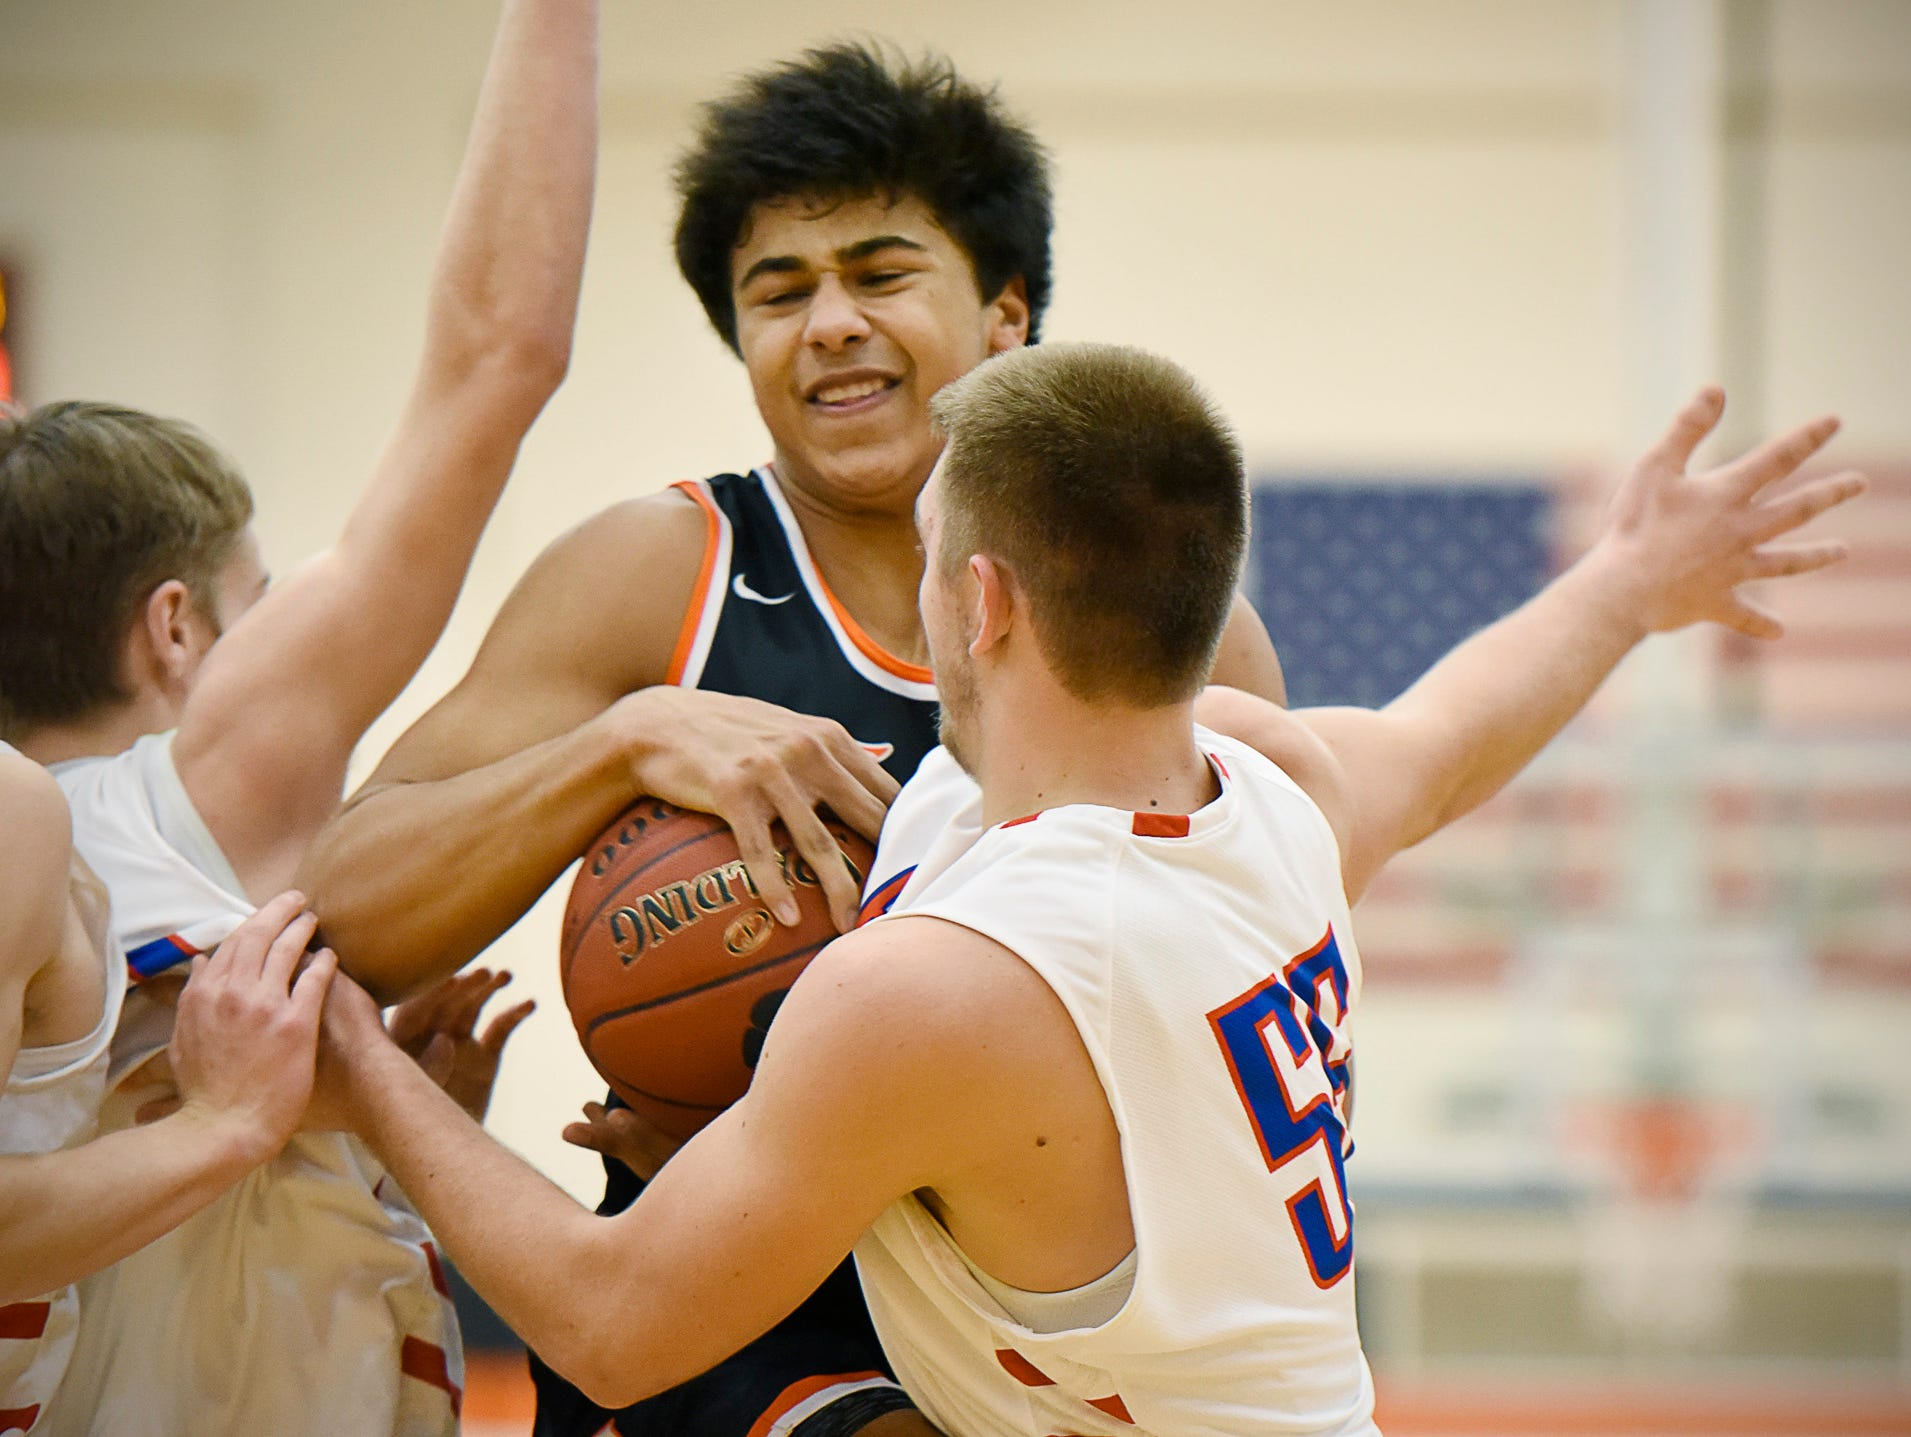 Tech's Brevyn Spann-Ford is shut down by Apollo's Ben Giese (left) and Luke Dunsmoor as he drives in under the basket during the first half Tuesday Dec. 8 at Apollo High School.